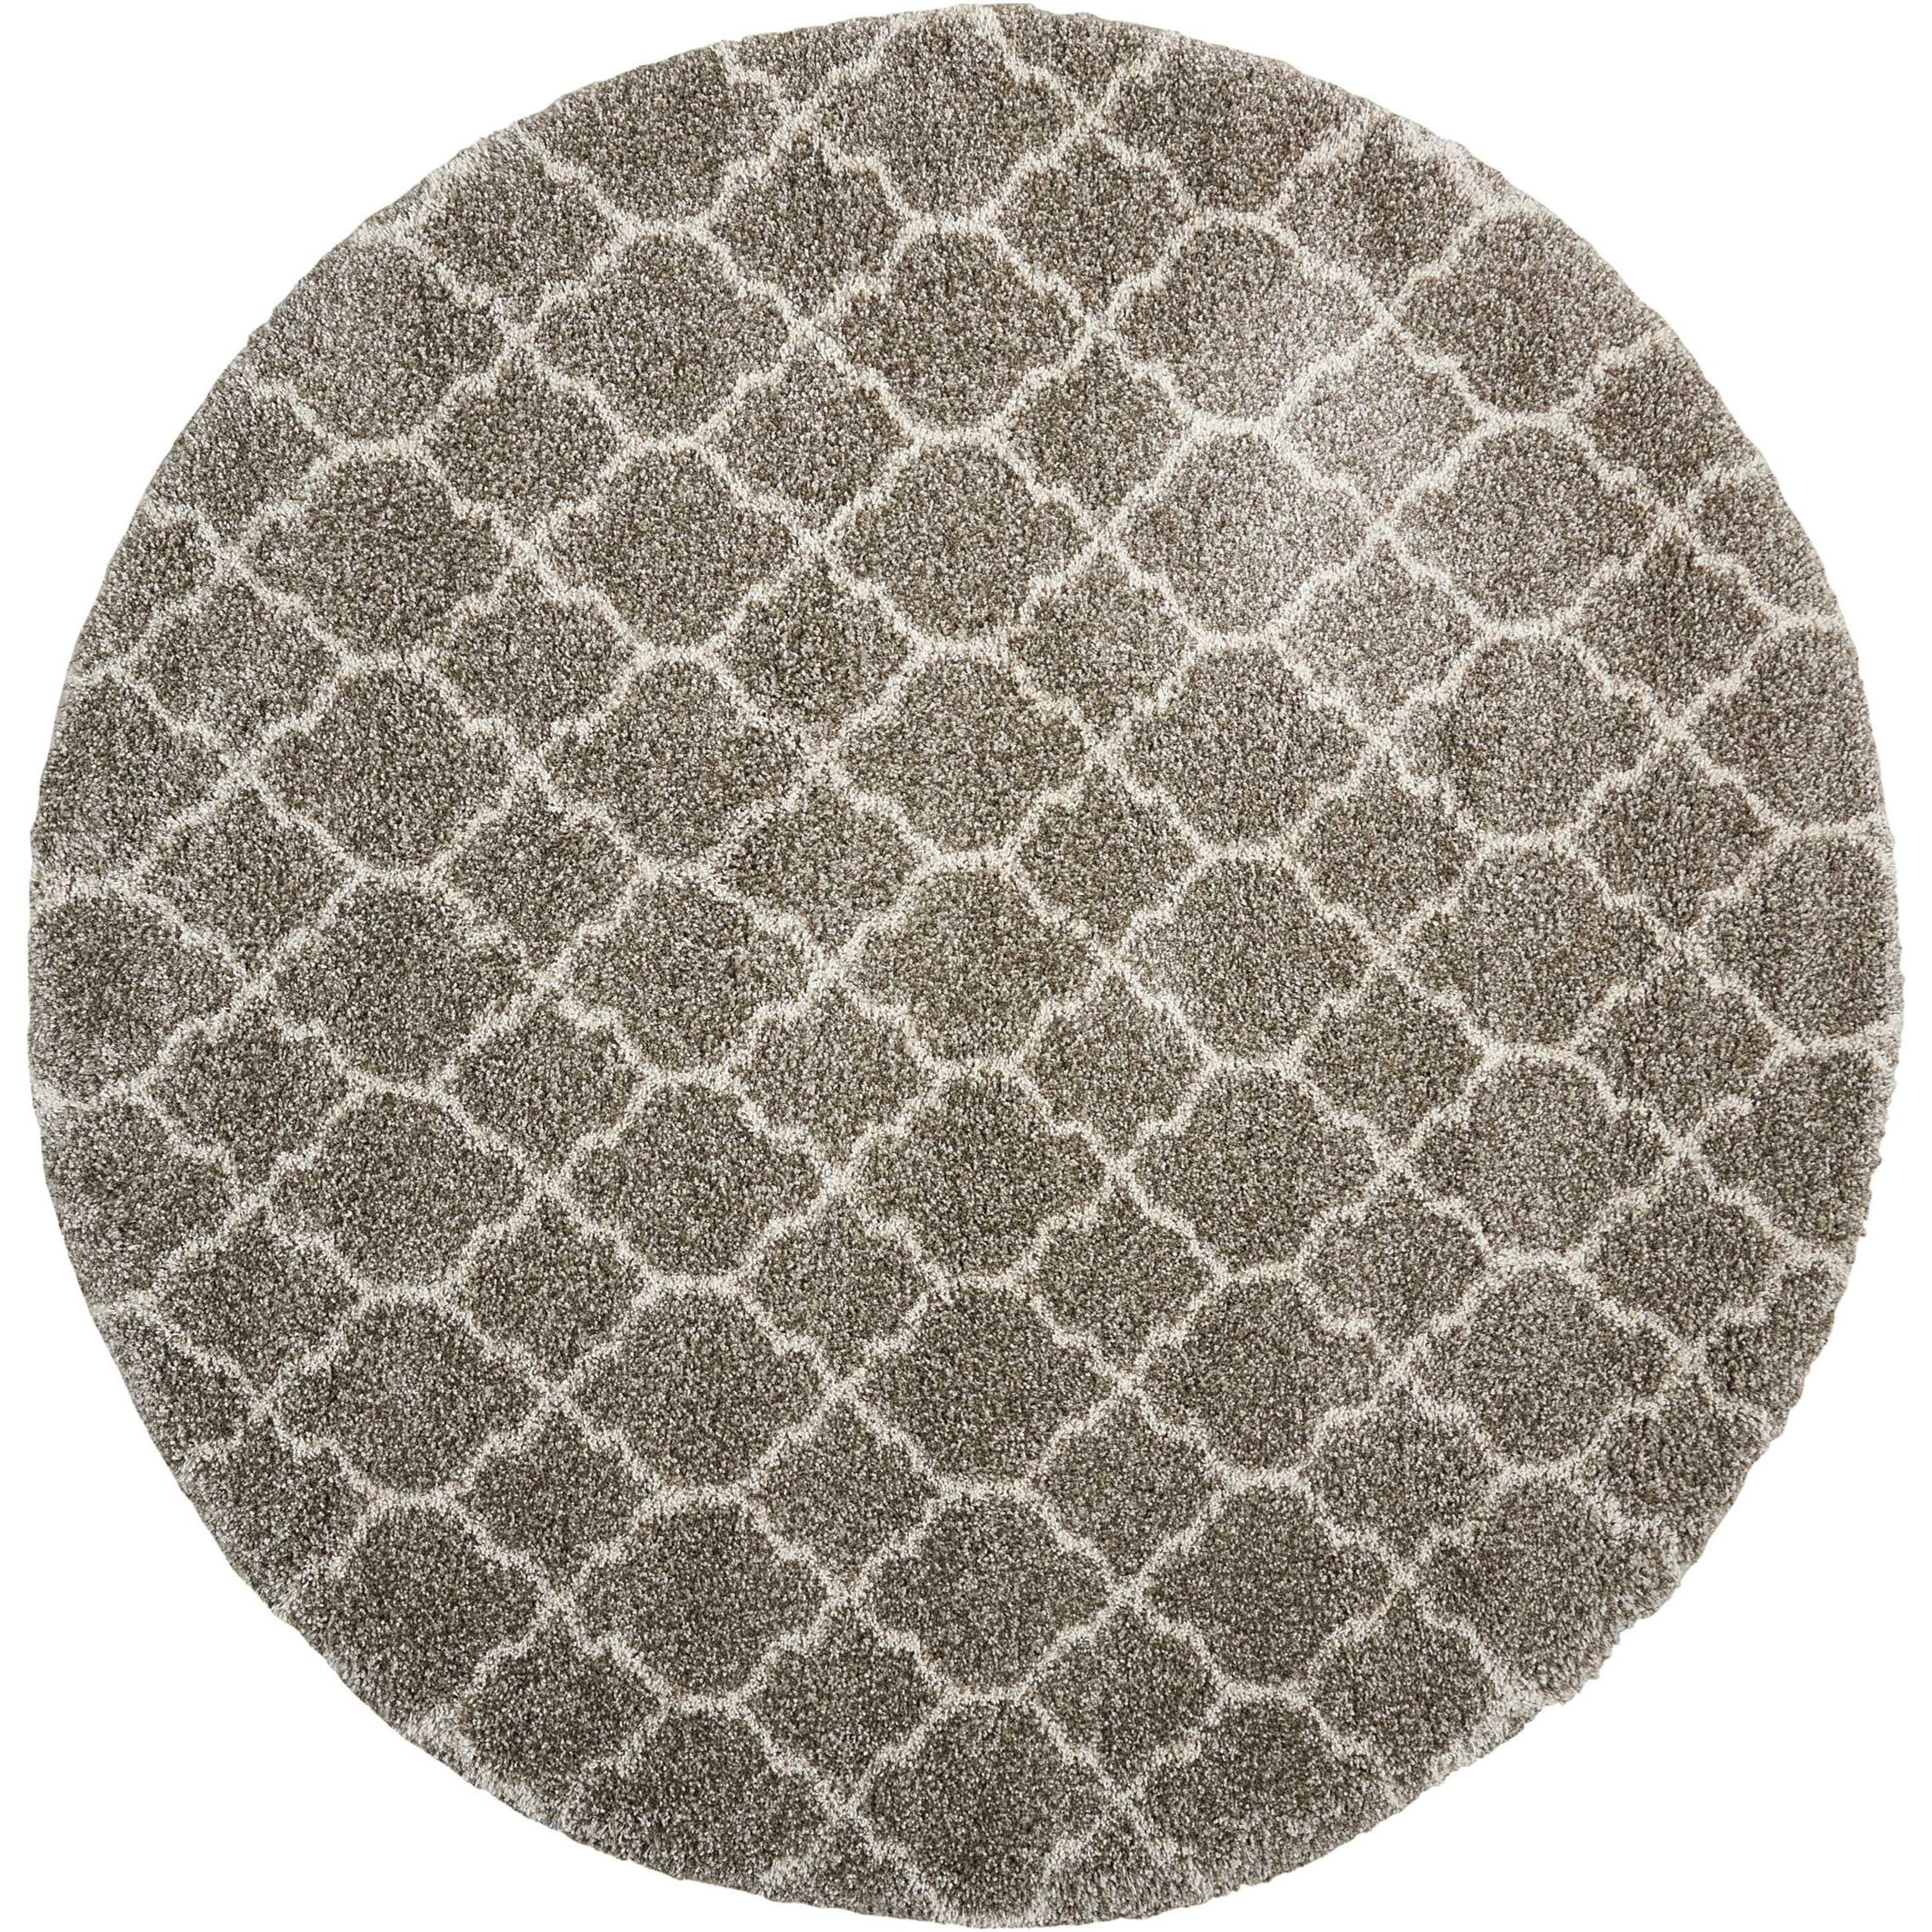 Amore Amore AMOR2 Beige 8' Round   Rug by Nourison at Home Collections Furniture